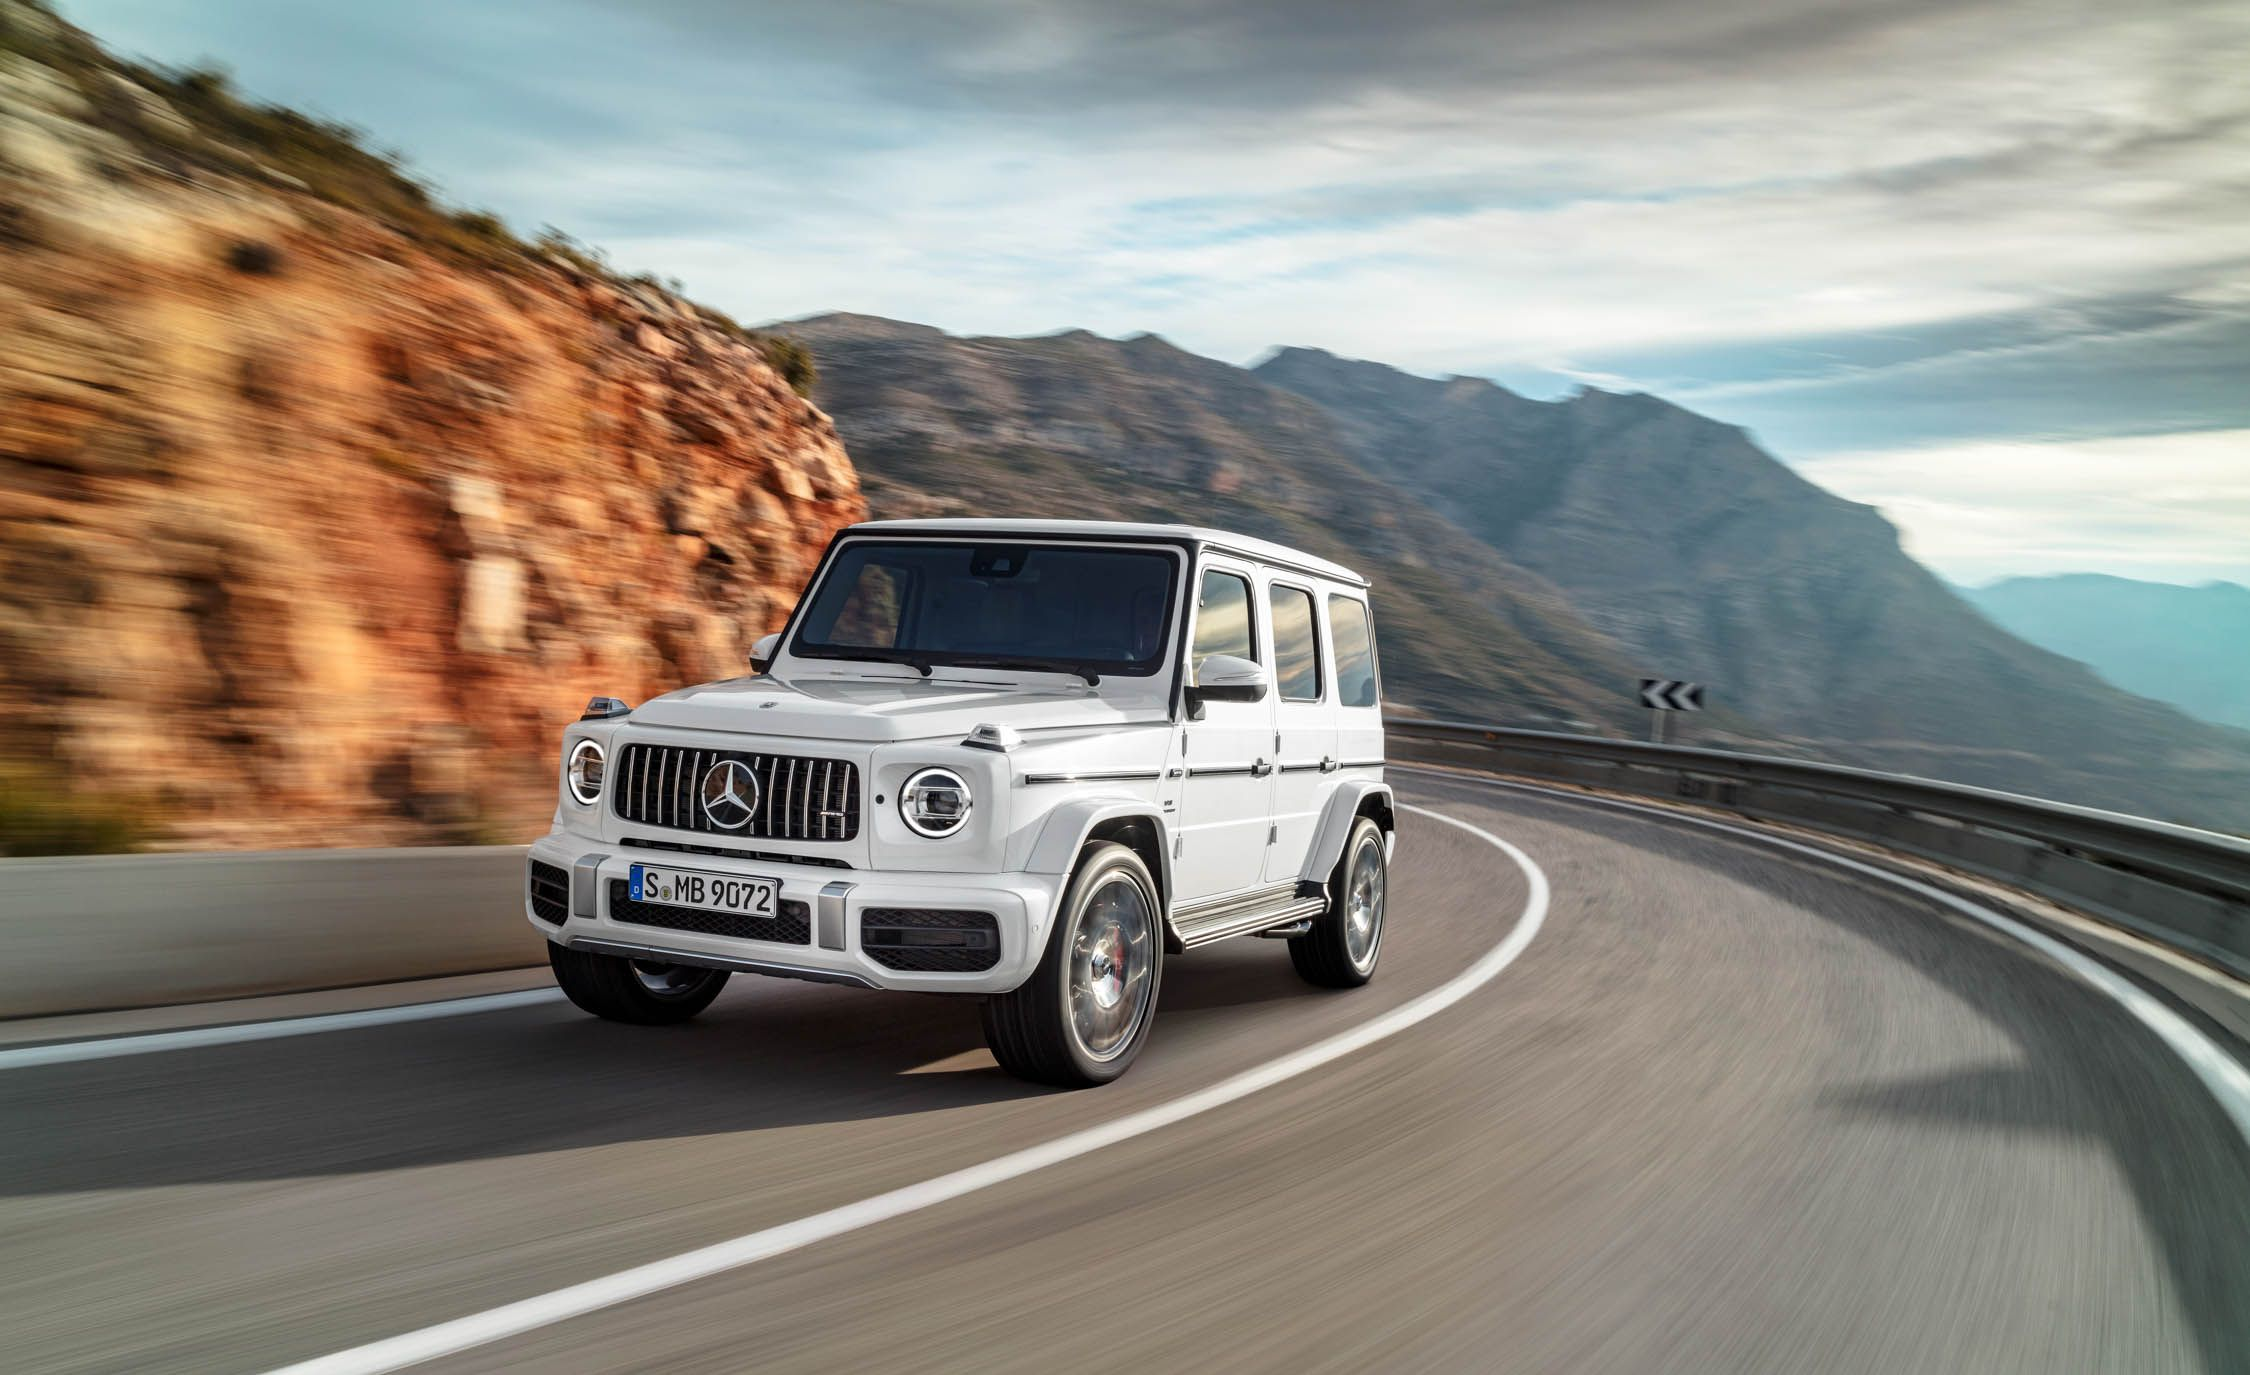 Mercedes AMG G63 / G65 4Matic Reviews | Mercedes AMG G63 / G65 4Matic  Price, Photos, And Specs | Car And Driver